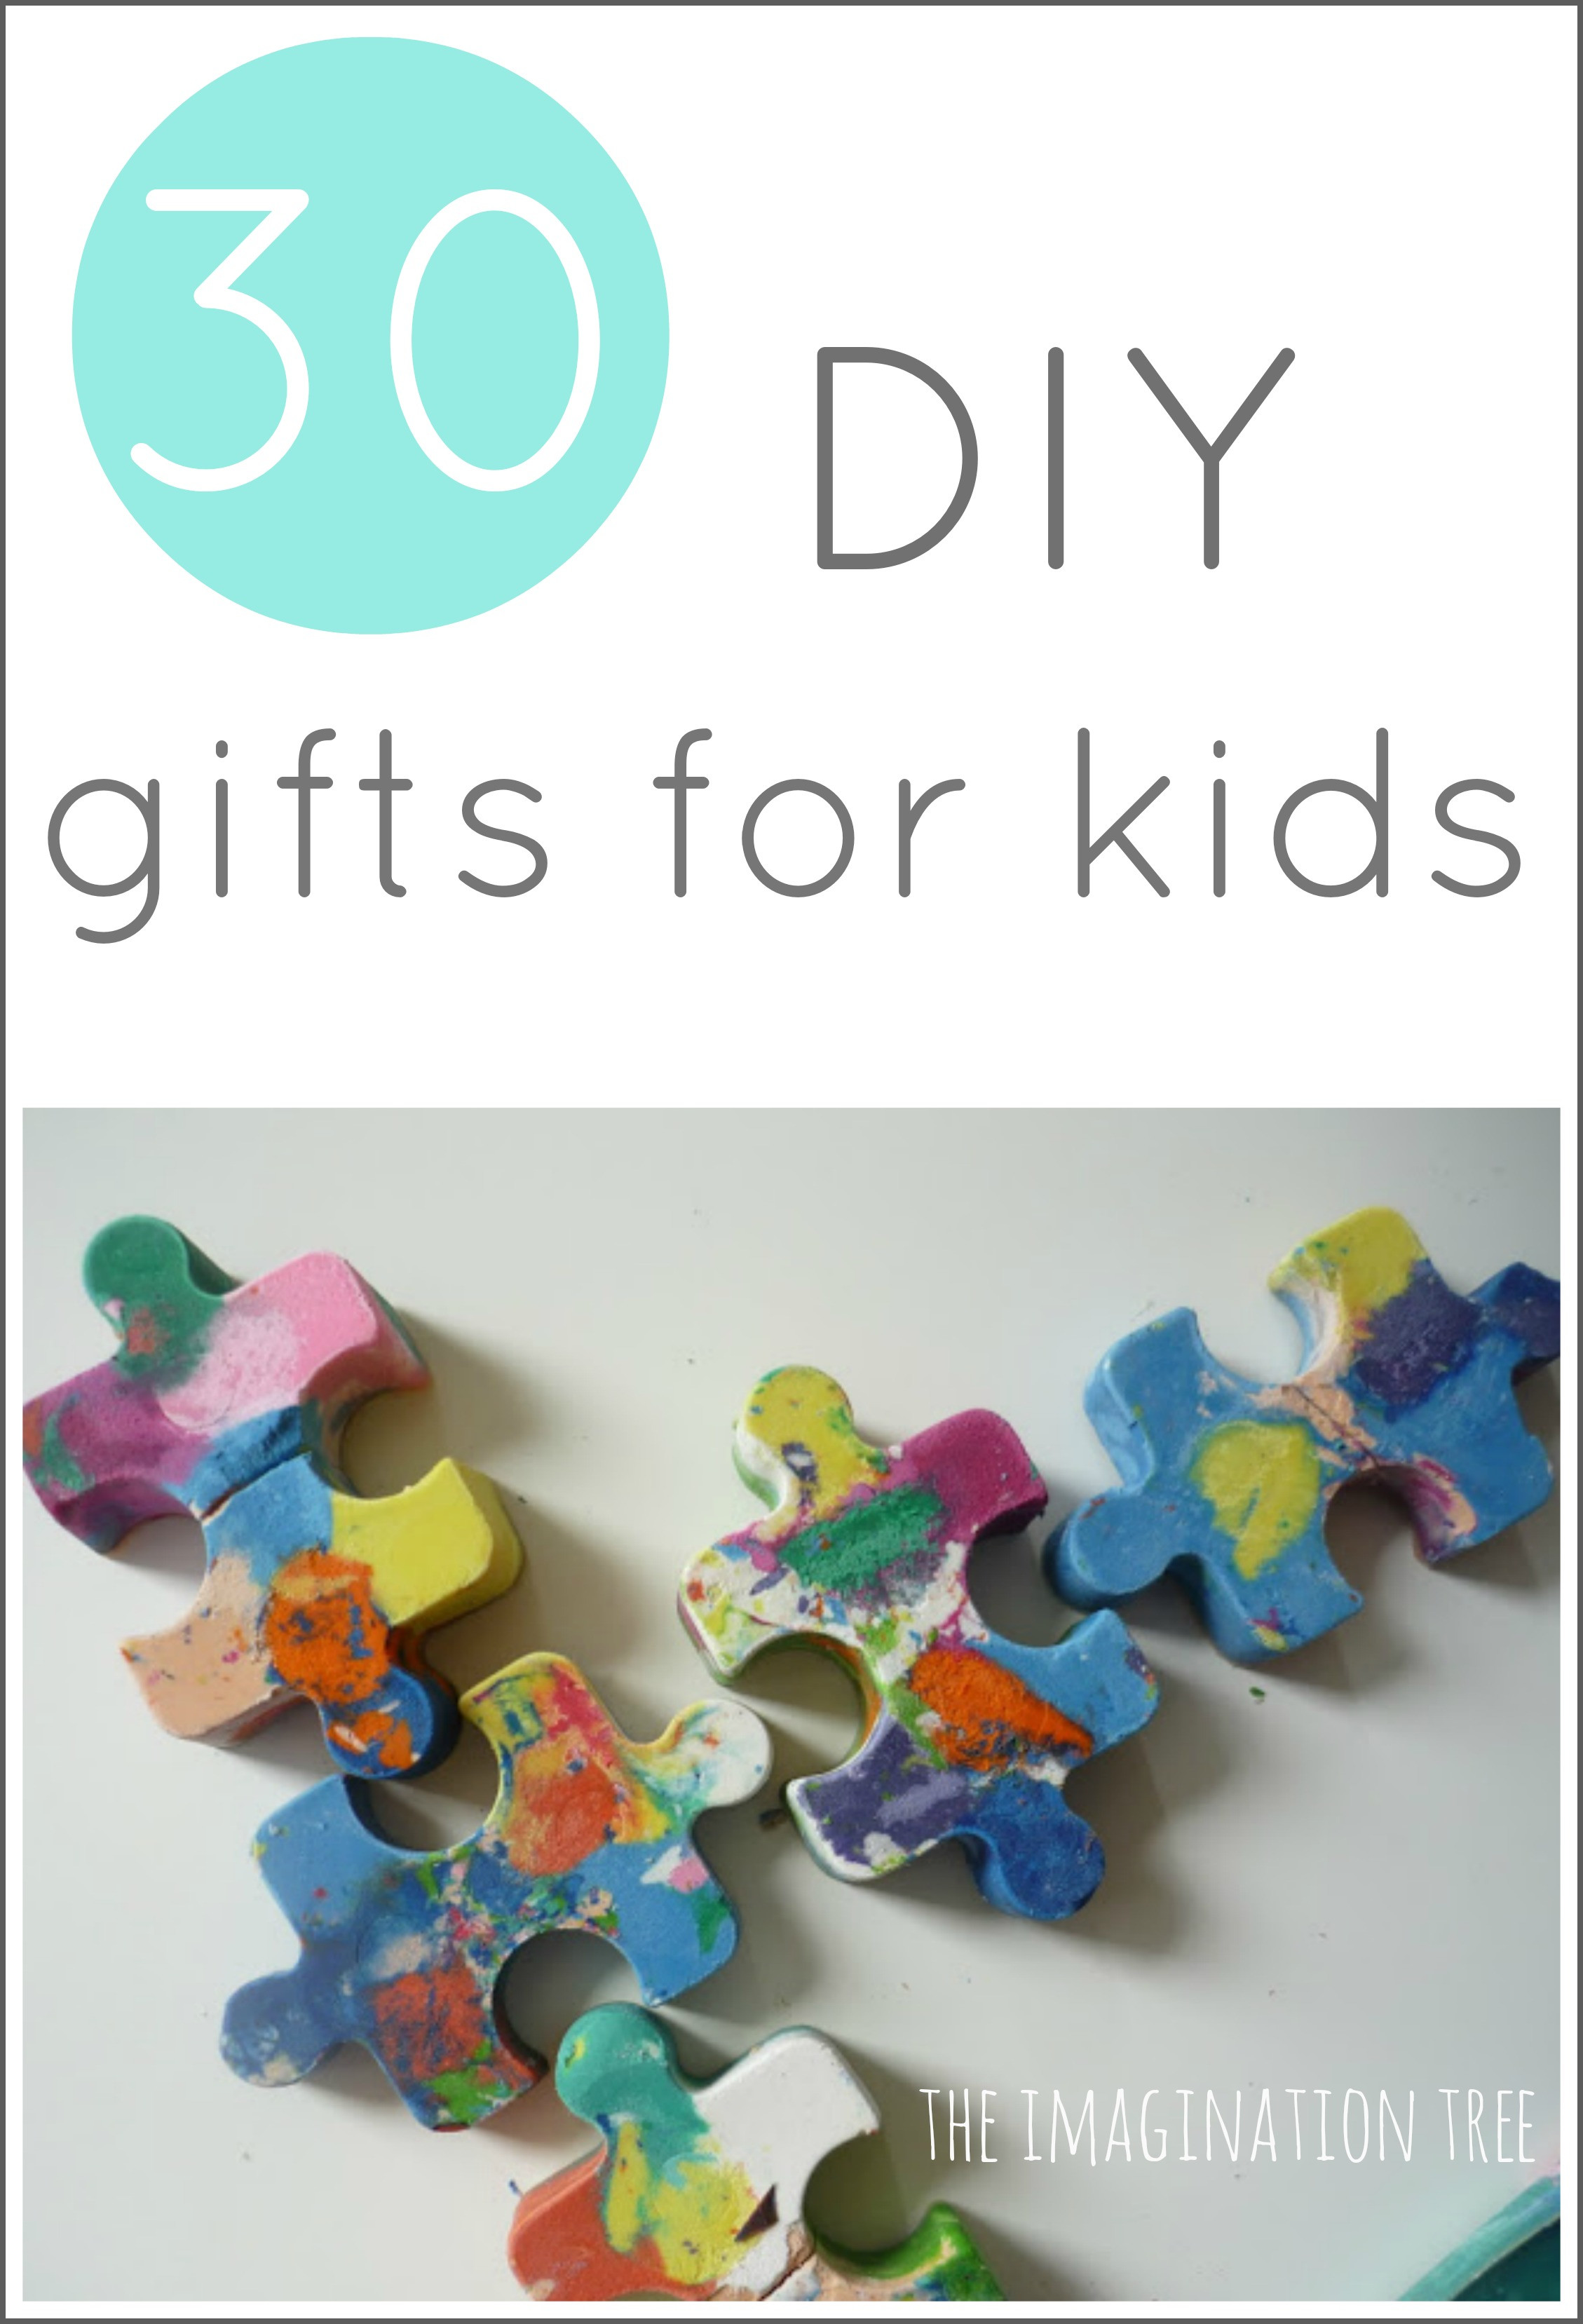 Best ideas about DIY Gifts For Kids To Make . Save or Pin 30 DIY Gifts to Make for Kids The Imagination Tree Now.